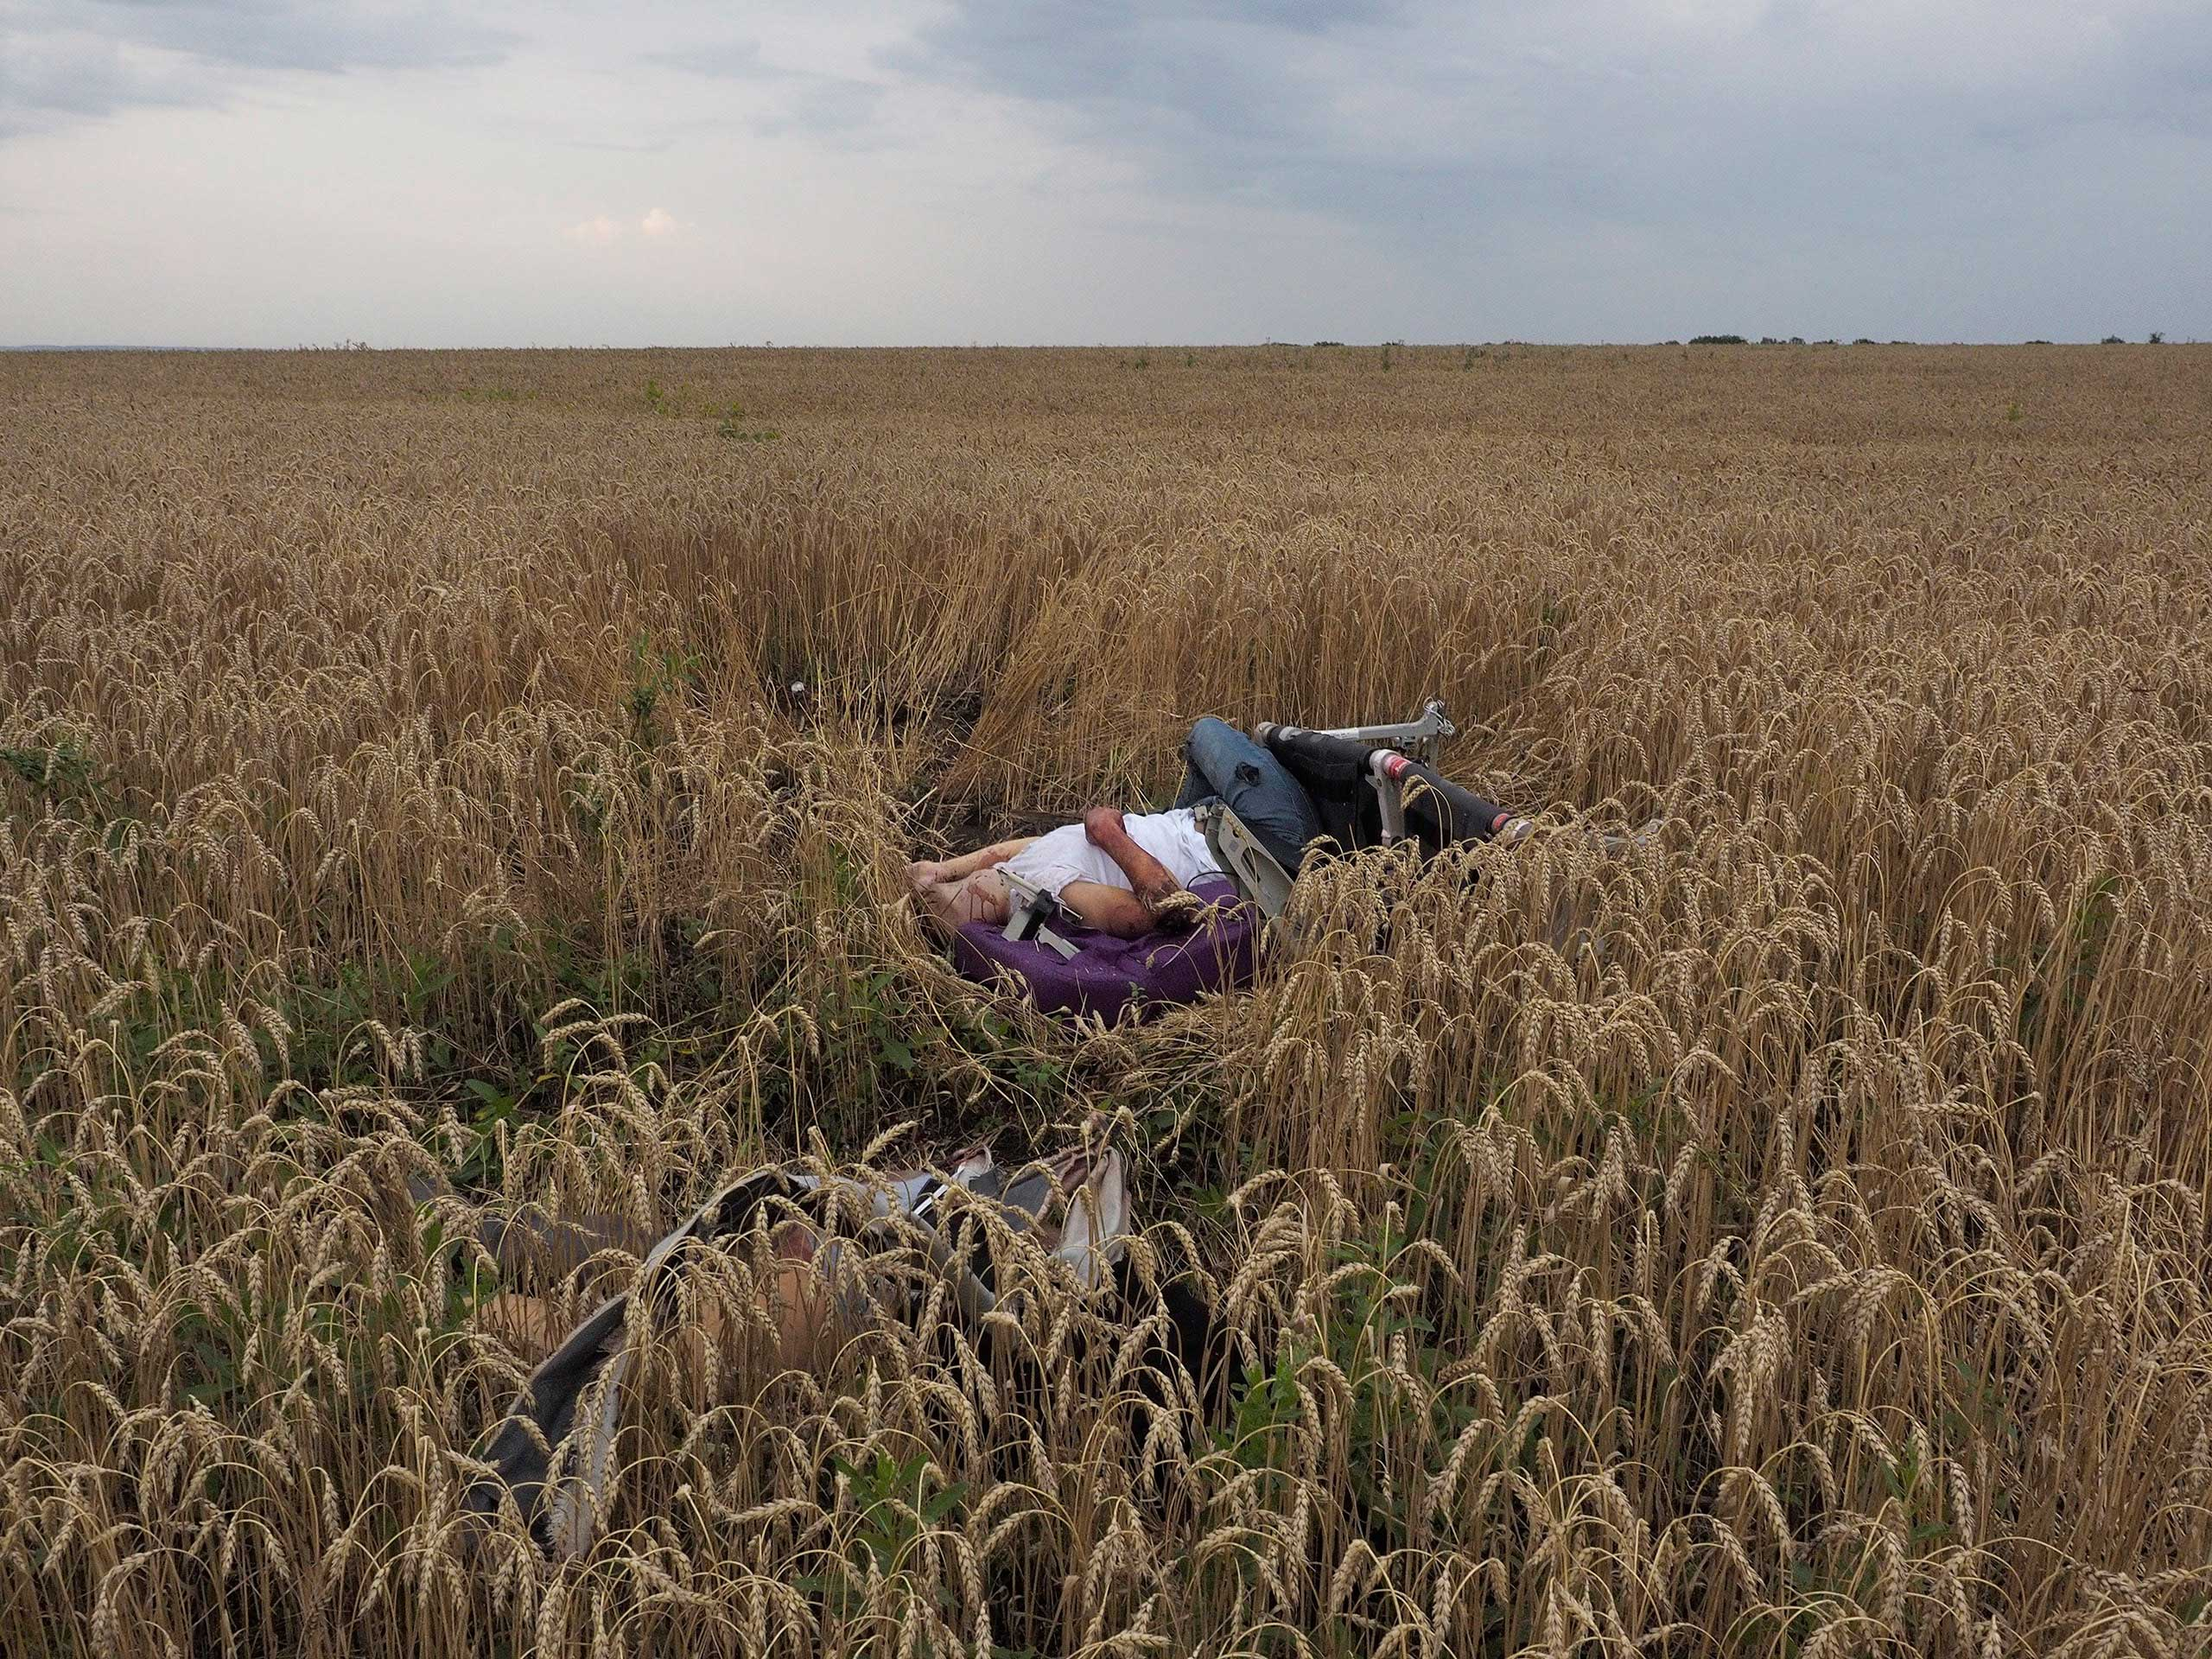 The body of a passenger from Malaysian Airlines flight MH17 which was shot down over Ukraine, July 17, 2014.